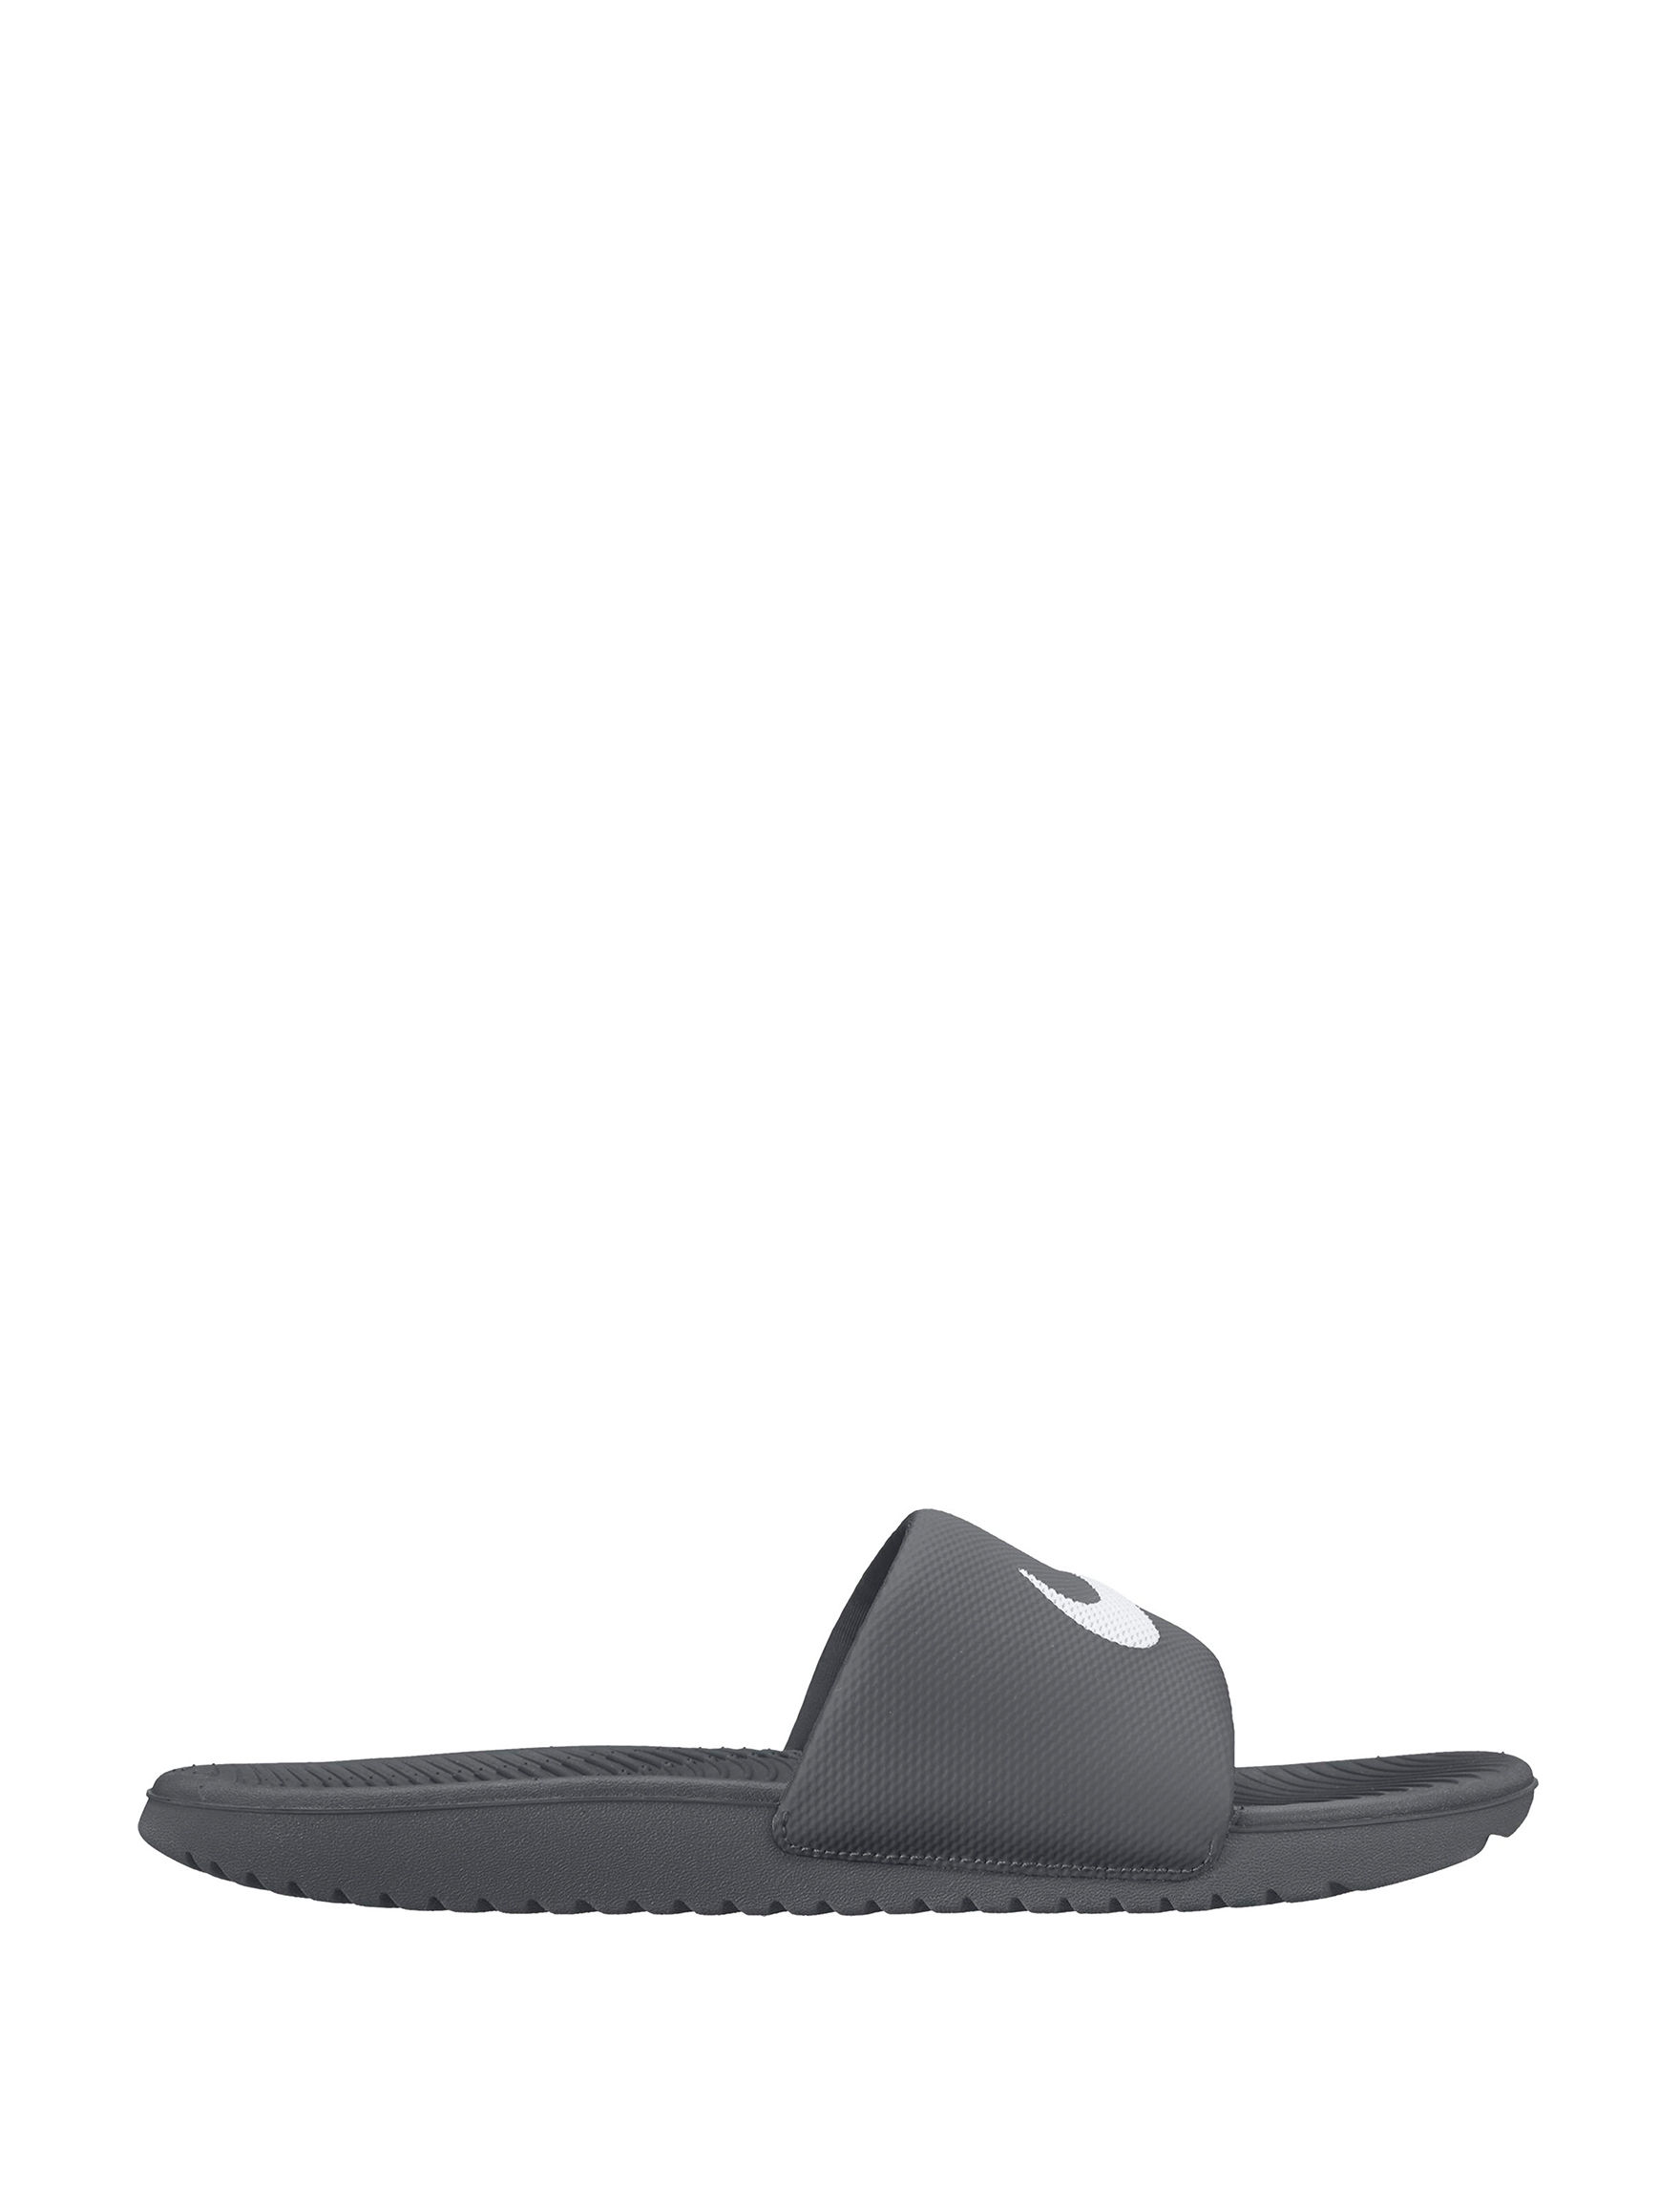 Nike Grey / White Slide Sandals